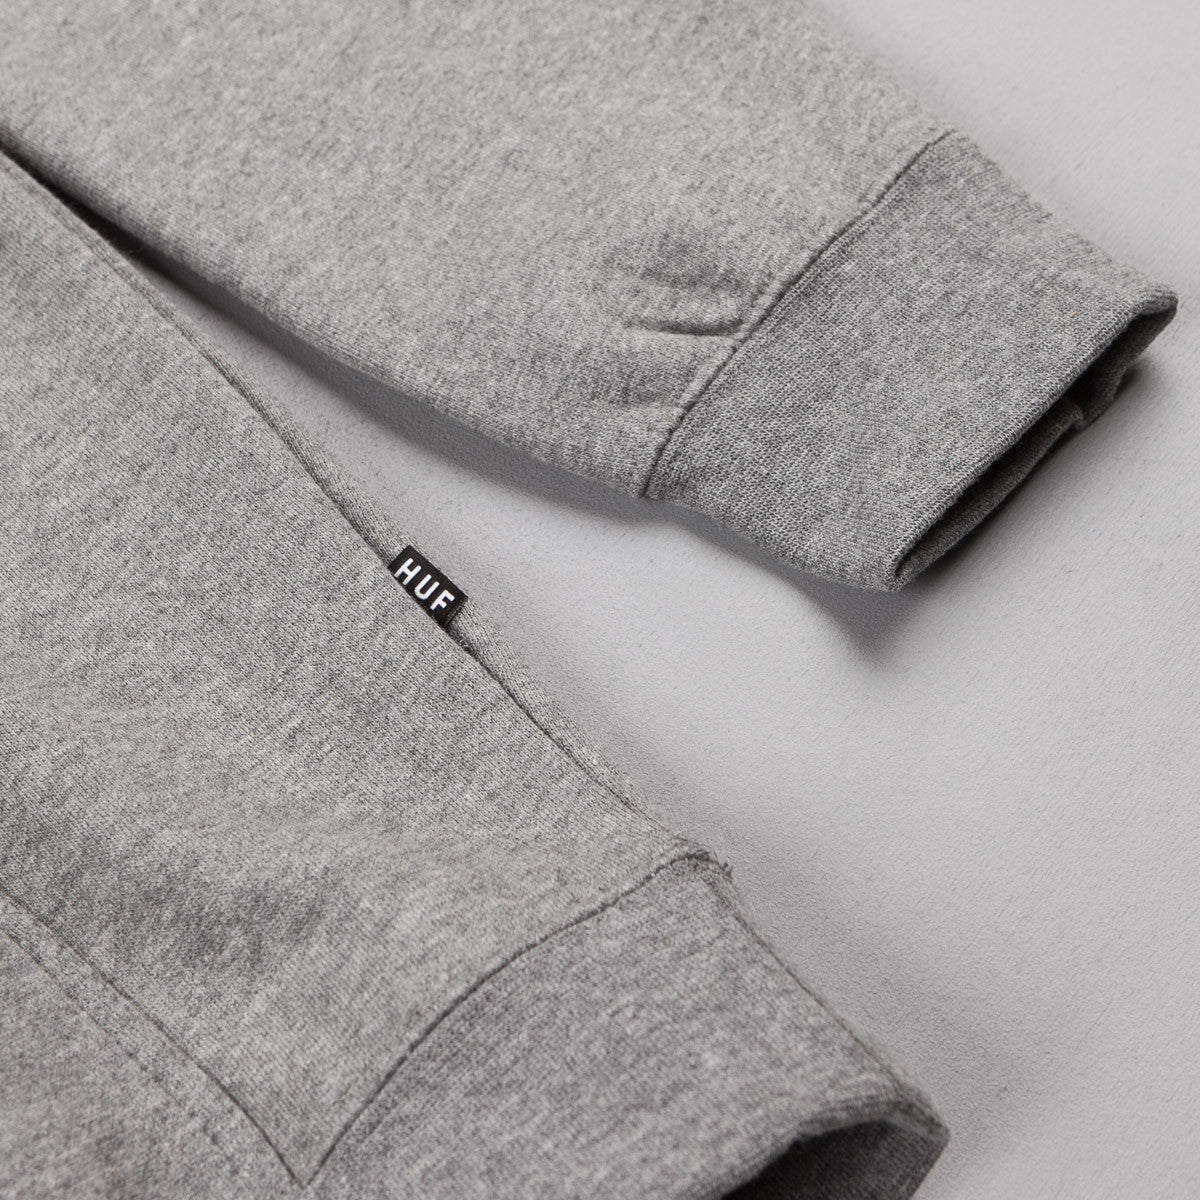 HUF Concrete Box Logo Hooded Sweatshirt - Grey Heather